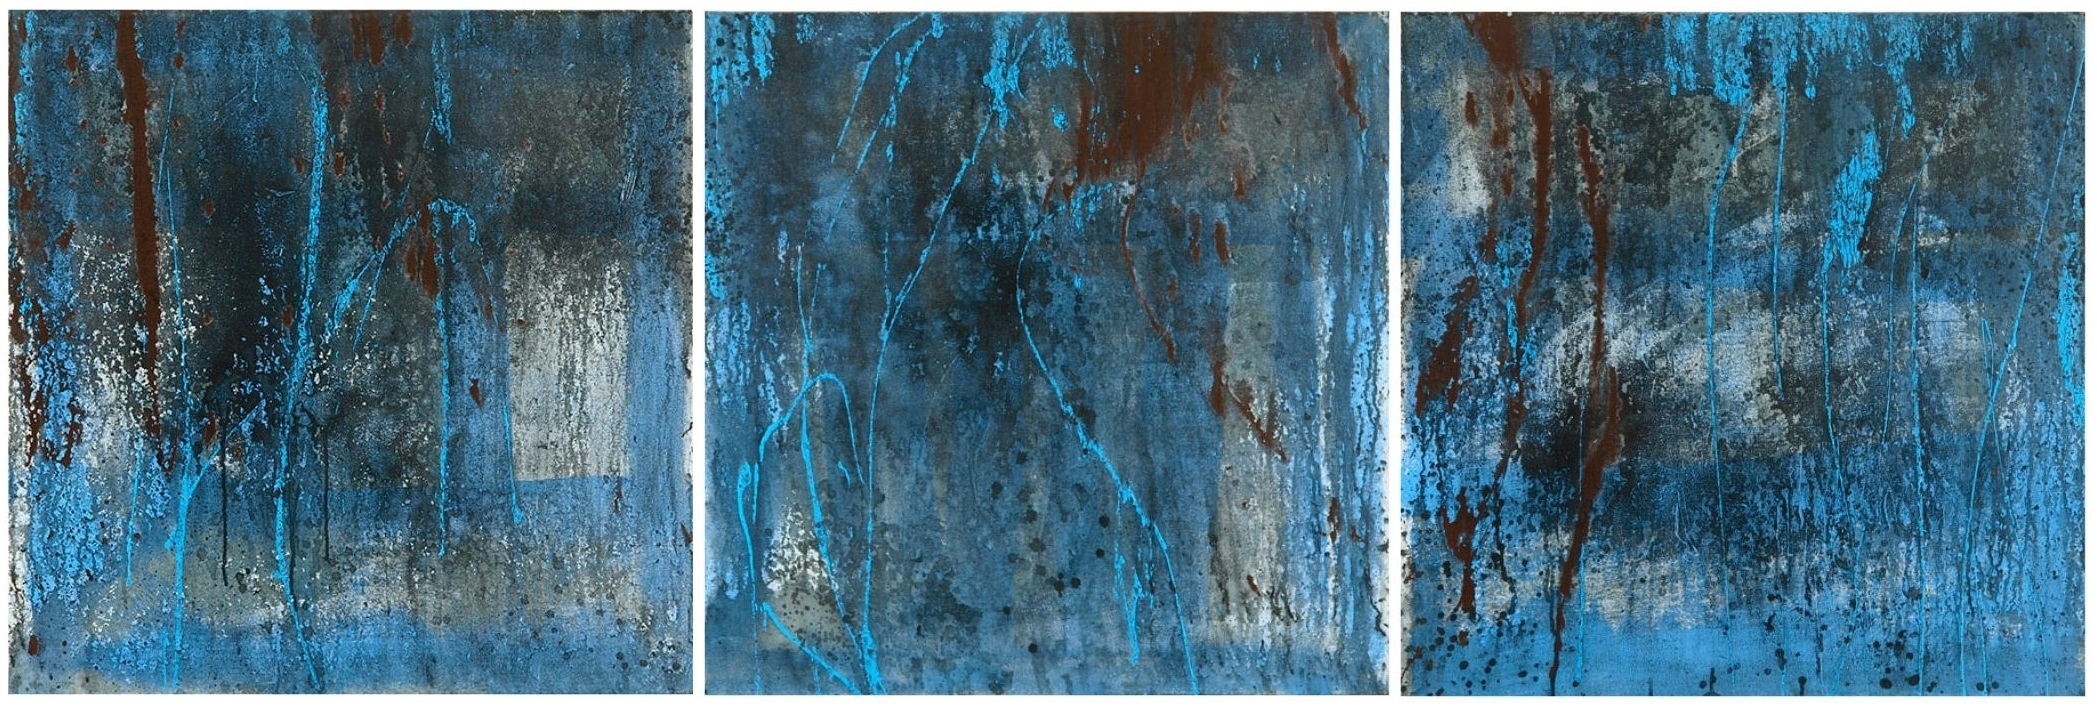 Light Blue Triptych, mixed media set of 3 24in x 24in canvases